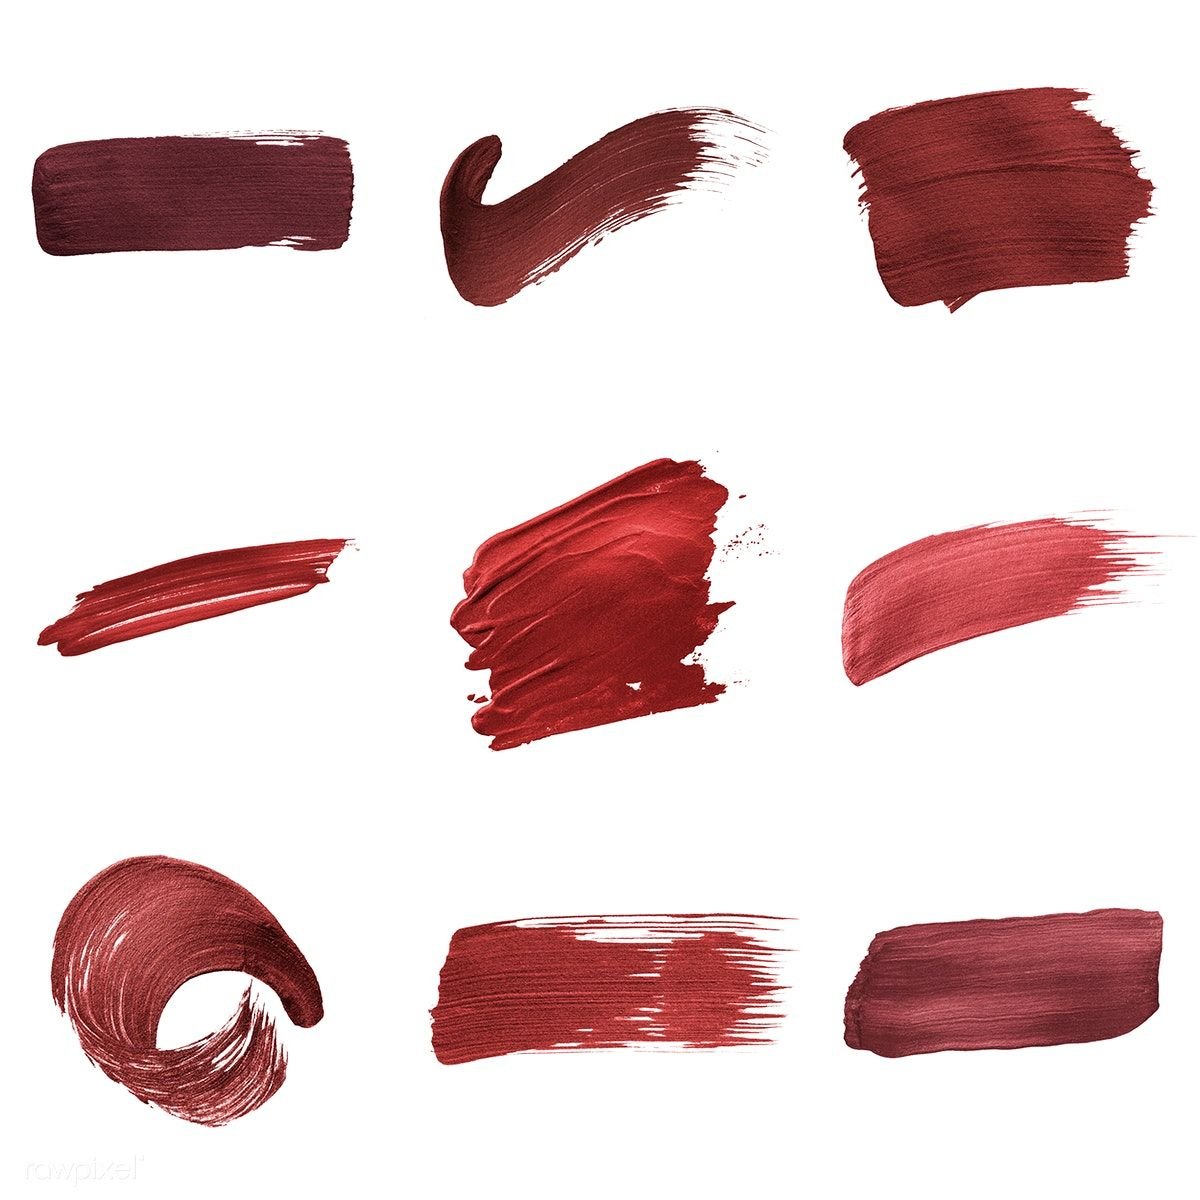 Red shimmery brush stroke badges free image by rawpixel